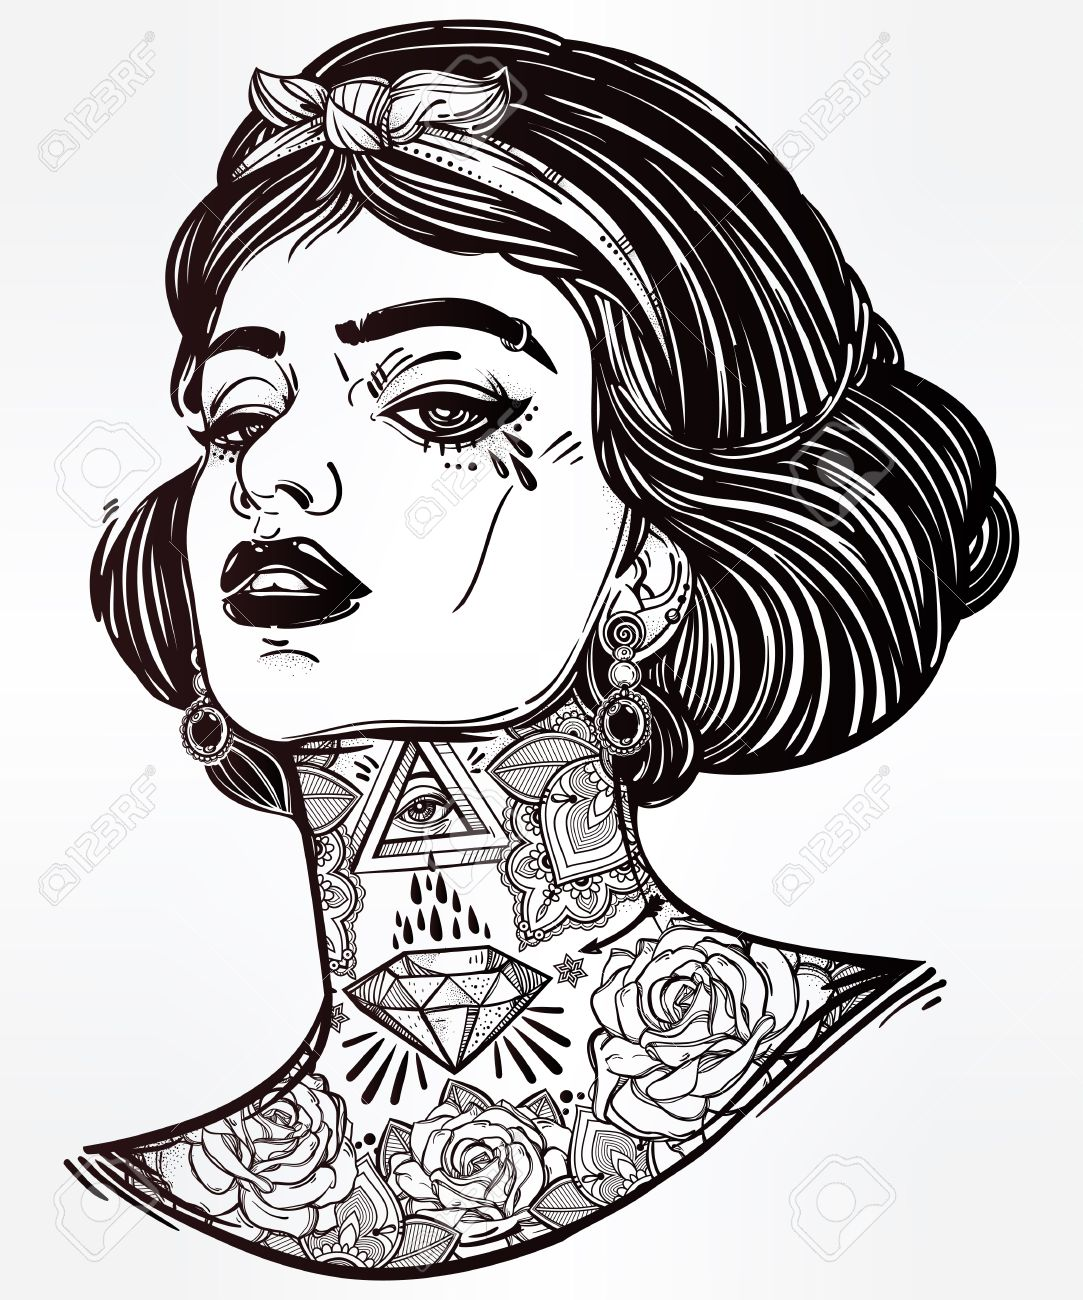 adult coloring book page with the face of young tattooed girl coloring book page for - Girl Coloring Books